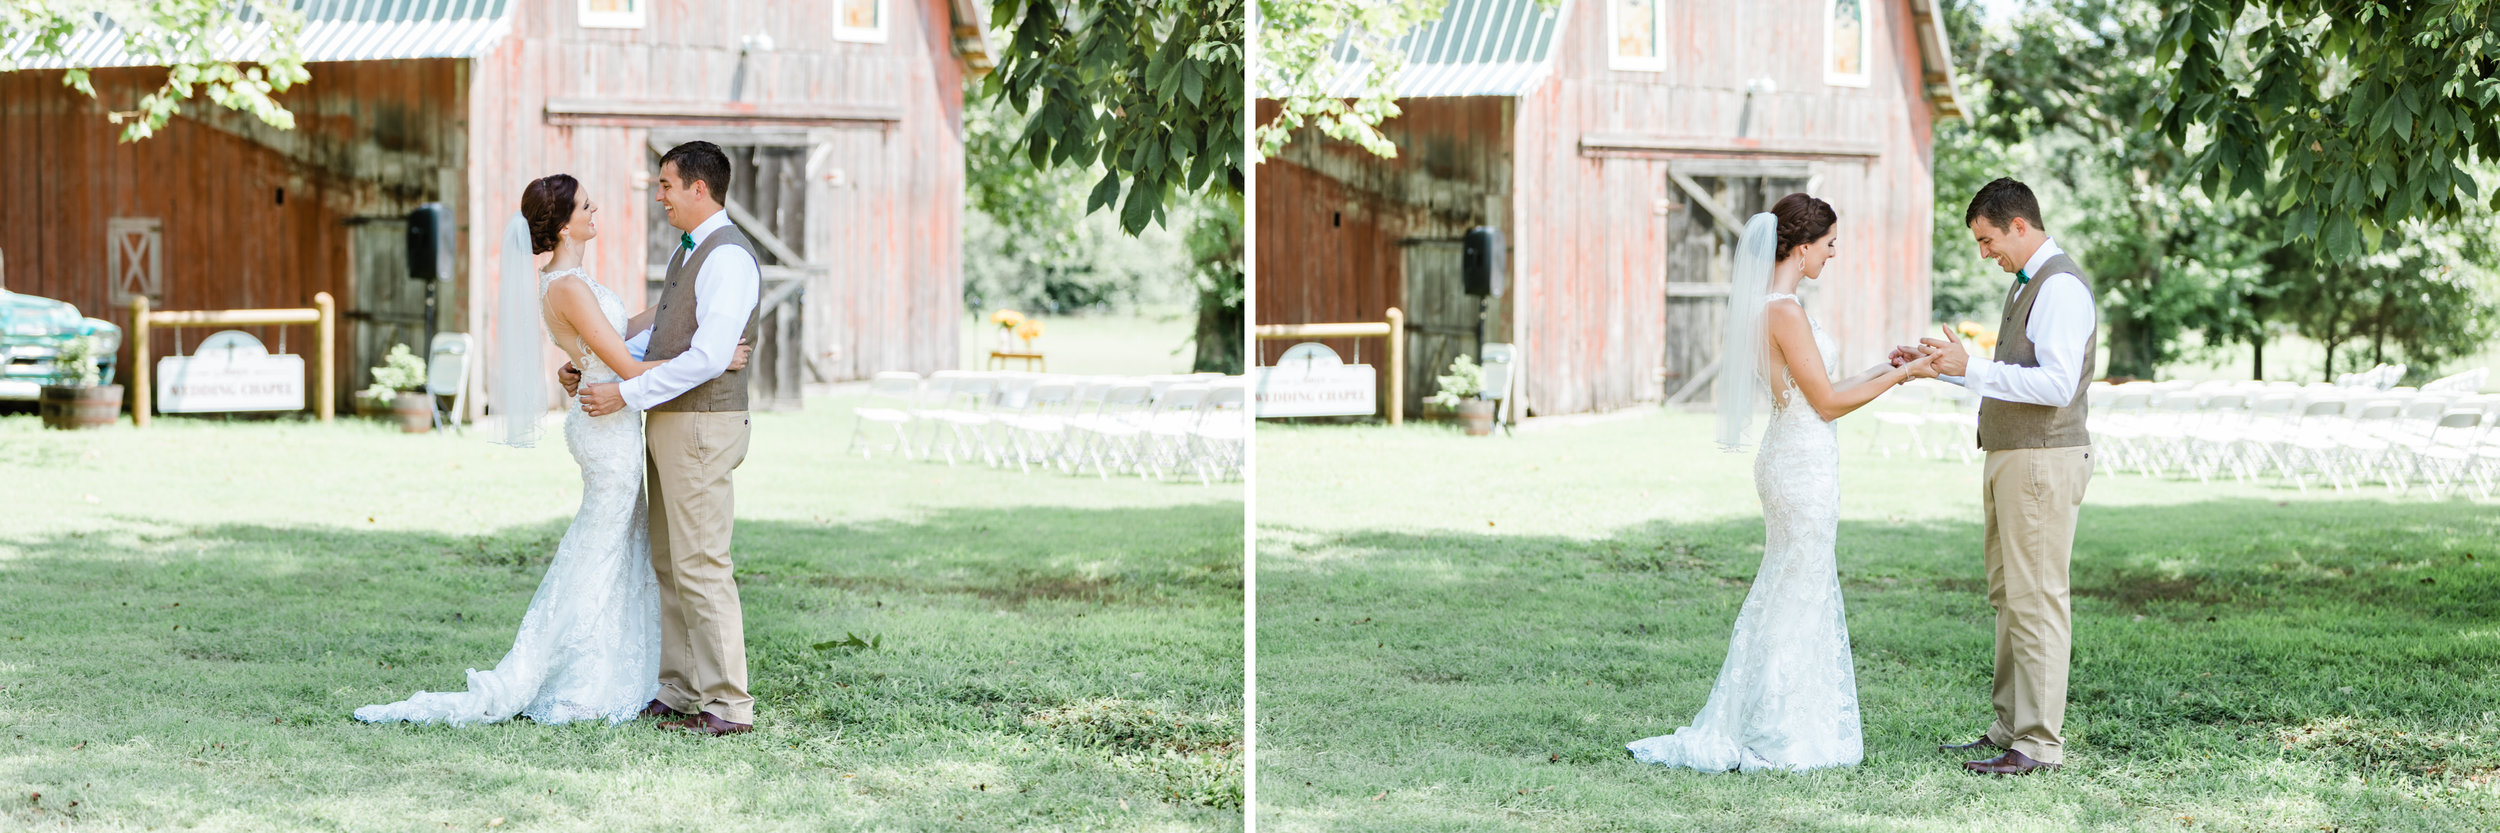 Bentonville Wedding Photographer Holland Barn 3.jpg